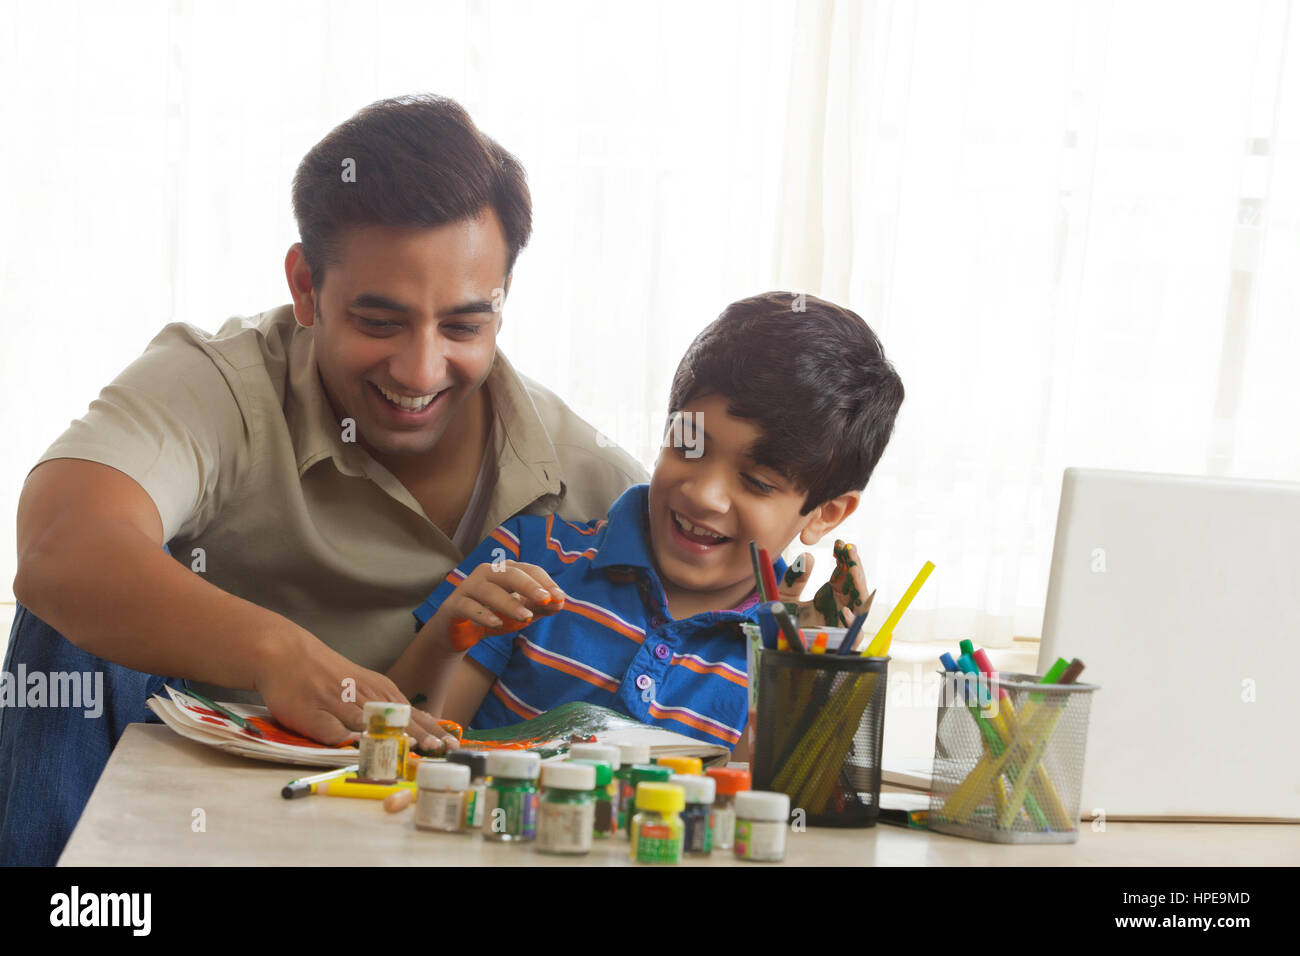 Father and son finger painting together - Stock Image